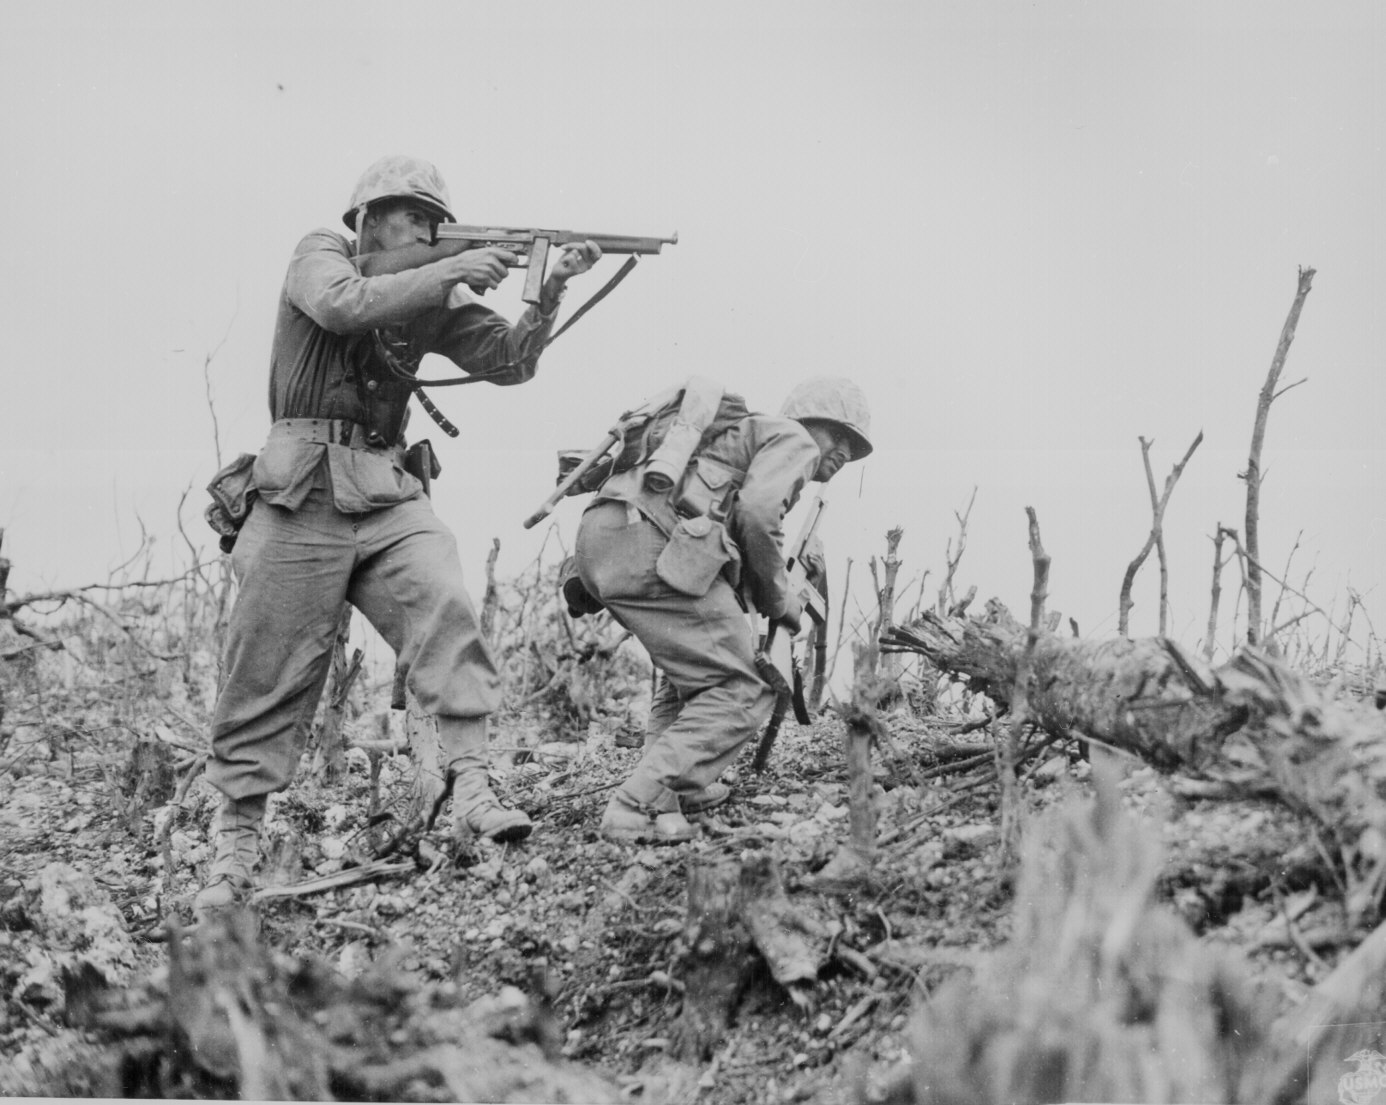 A Marine of the US 1st Marine Division pointed his Thompson submachine gun at a Japanese sniper, Okinawa, Apr-Jun 1945 (US National Archives: 127-N-123170)